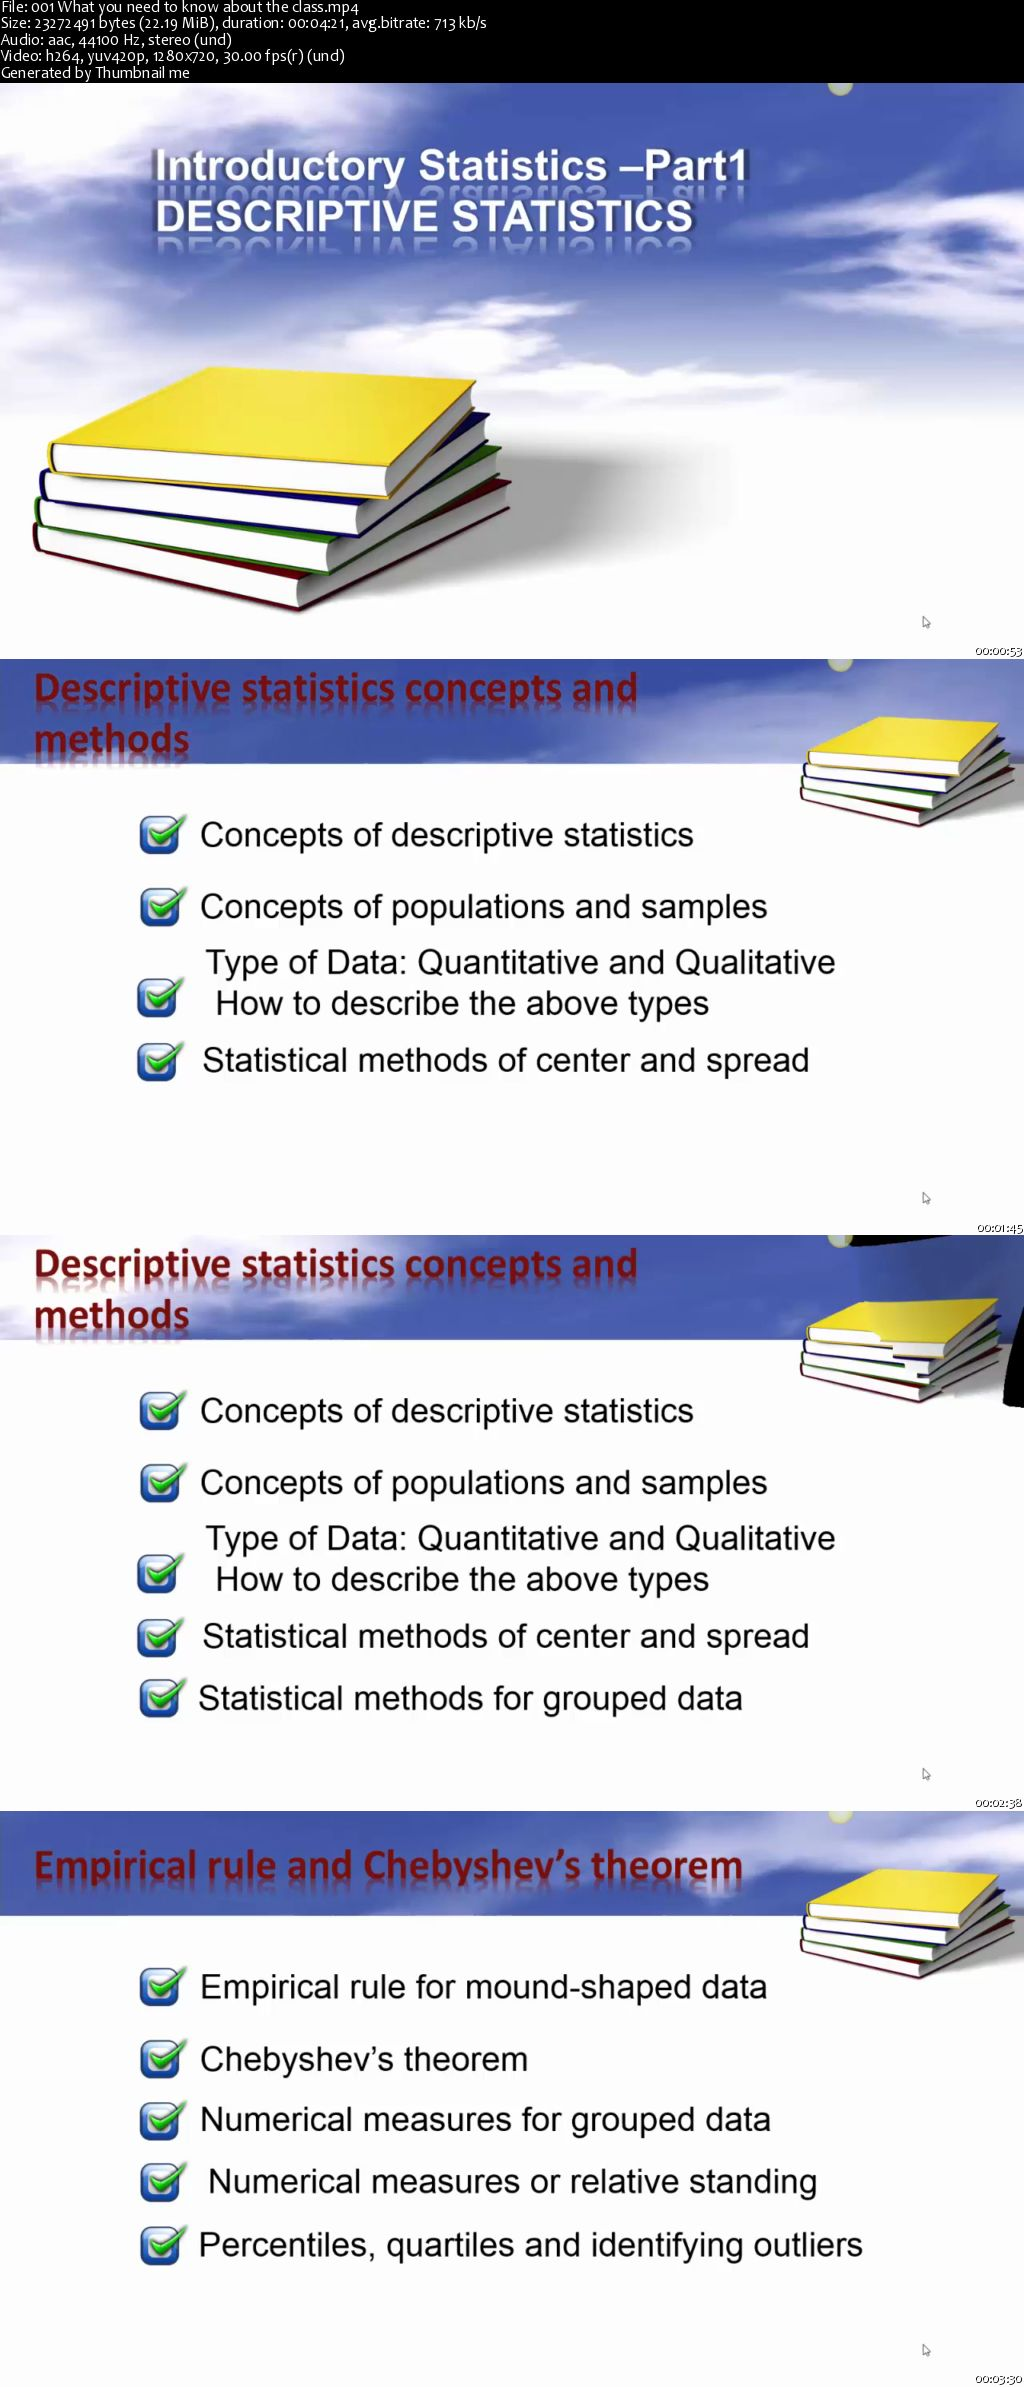 Introductory statistics Part1: Descriptive Statistics